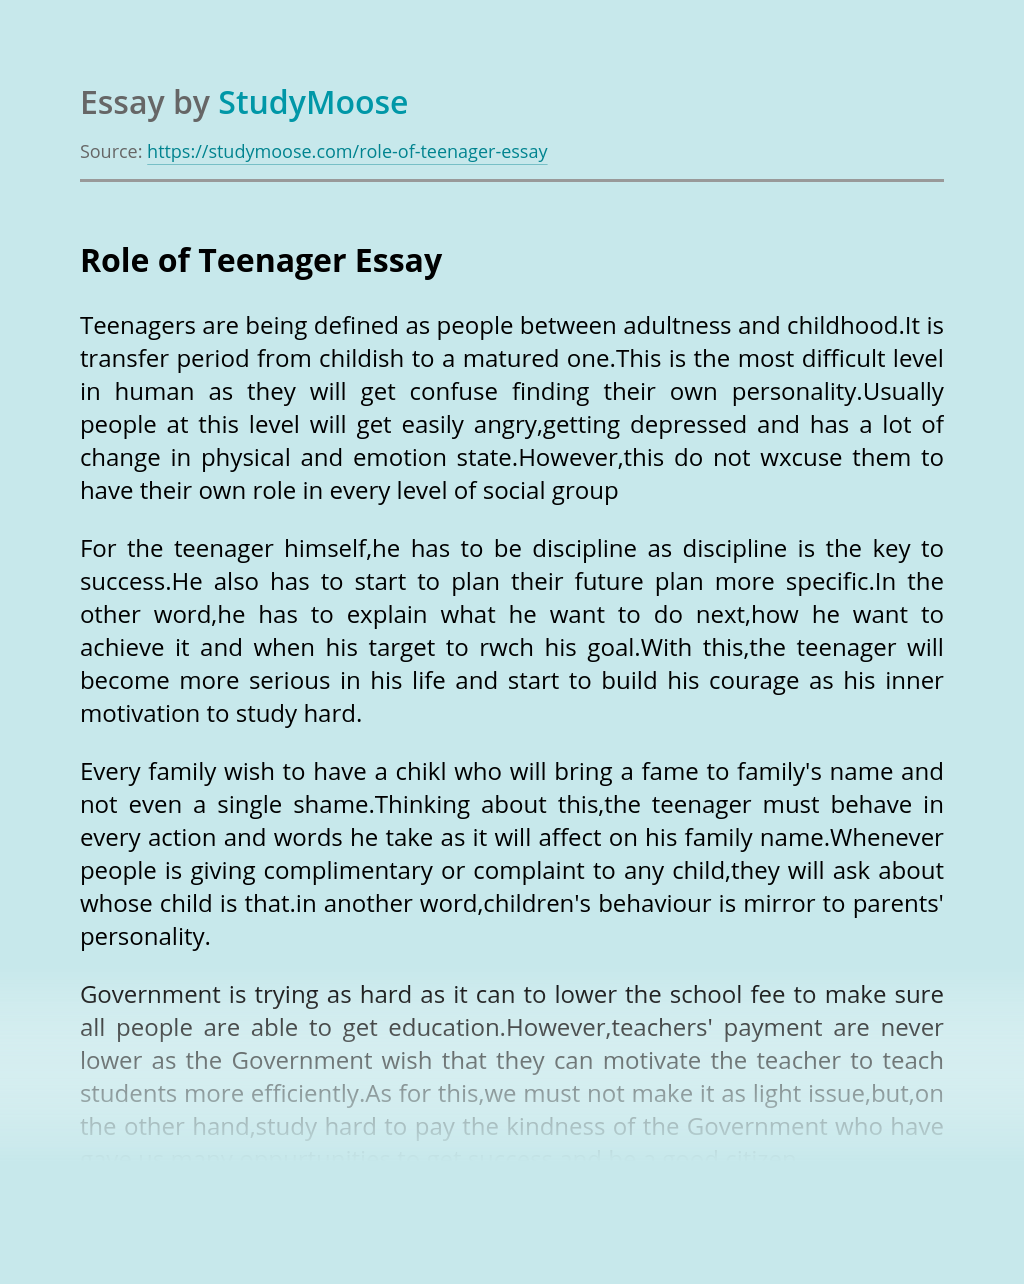 Role of Teenager